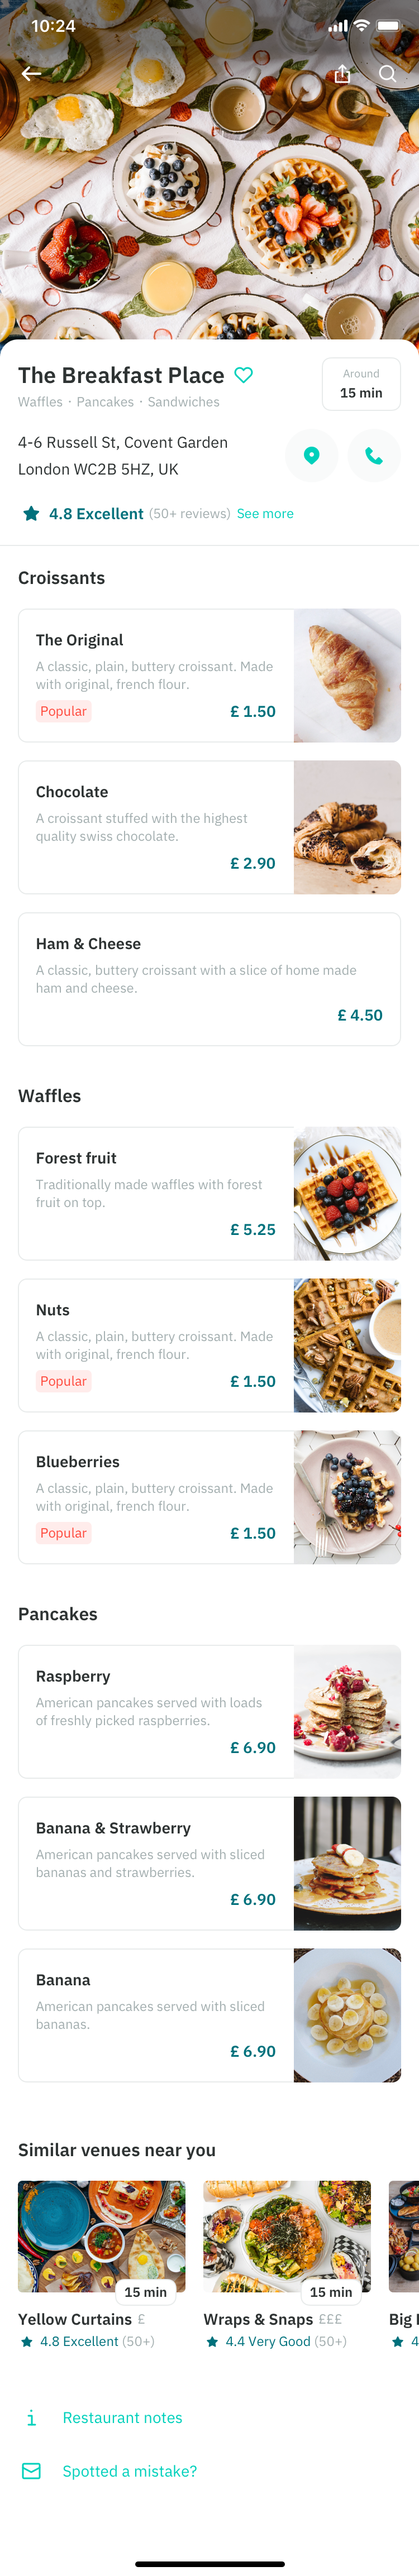 Individual restaruant menu selection page feature in Deliveroo app fourth issue